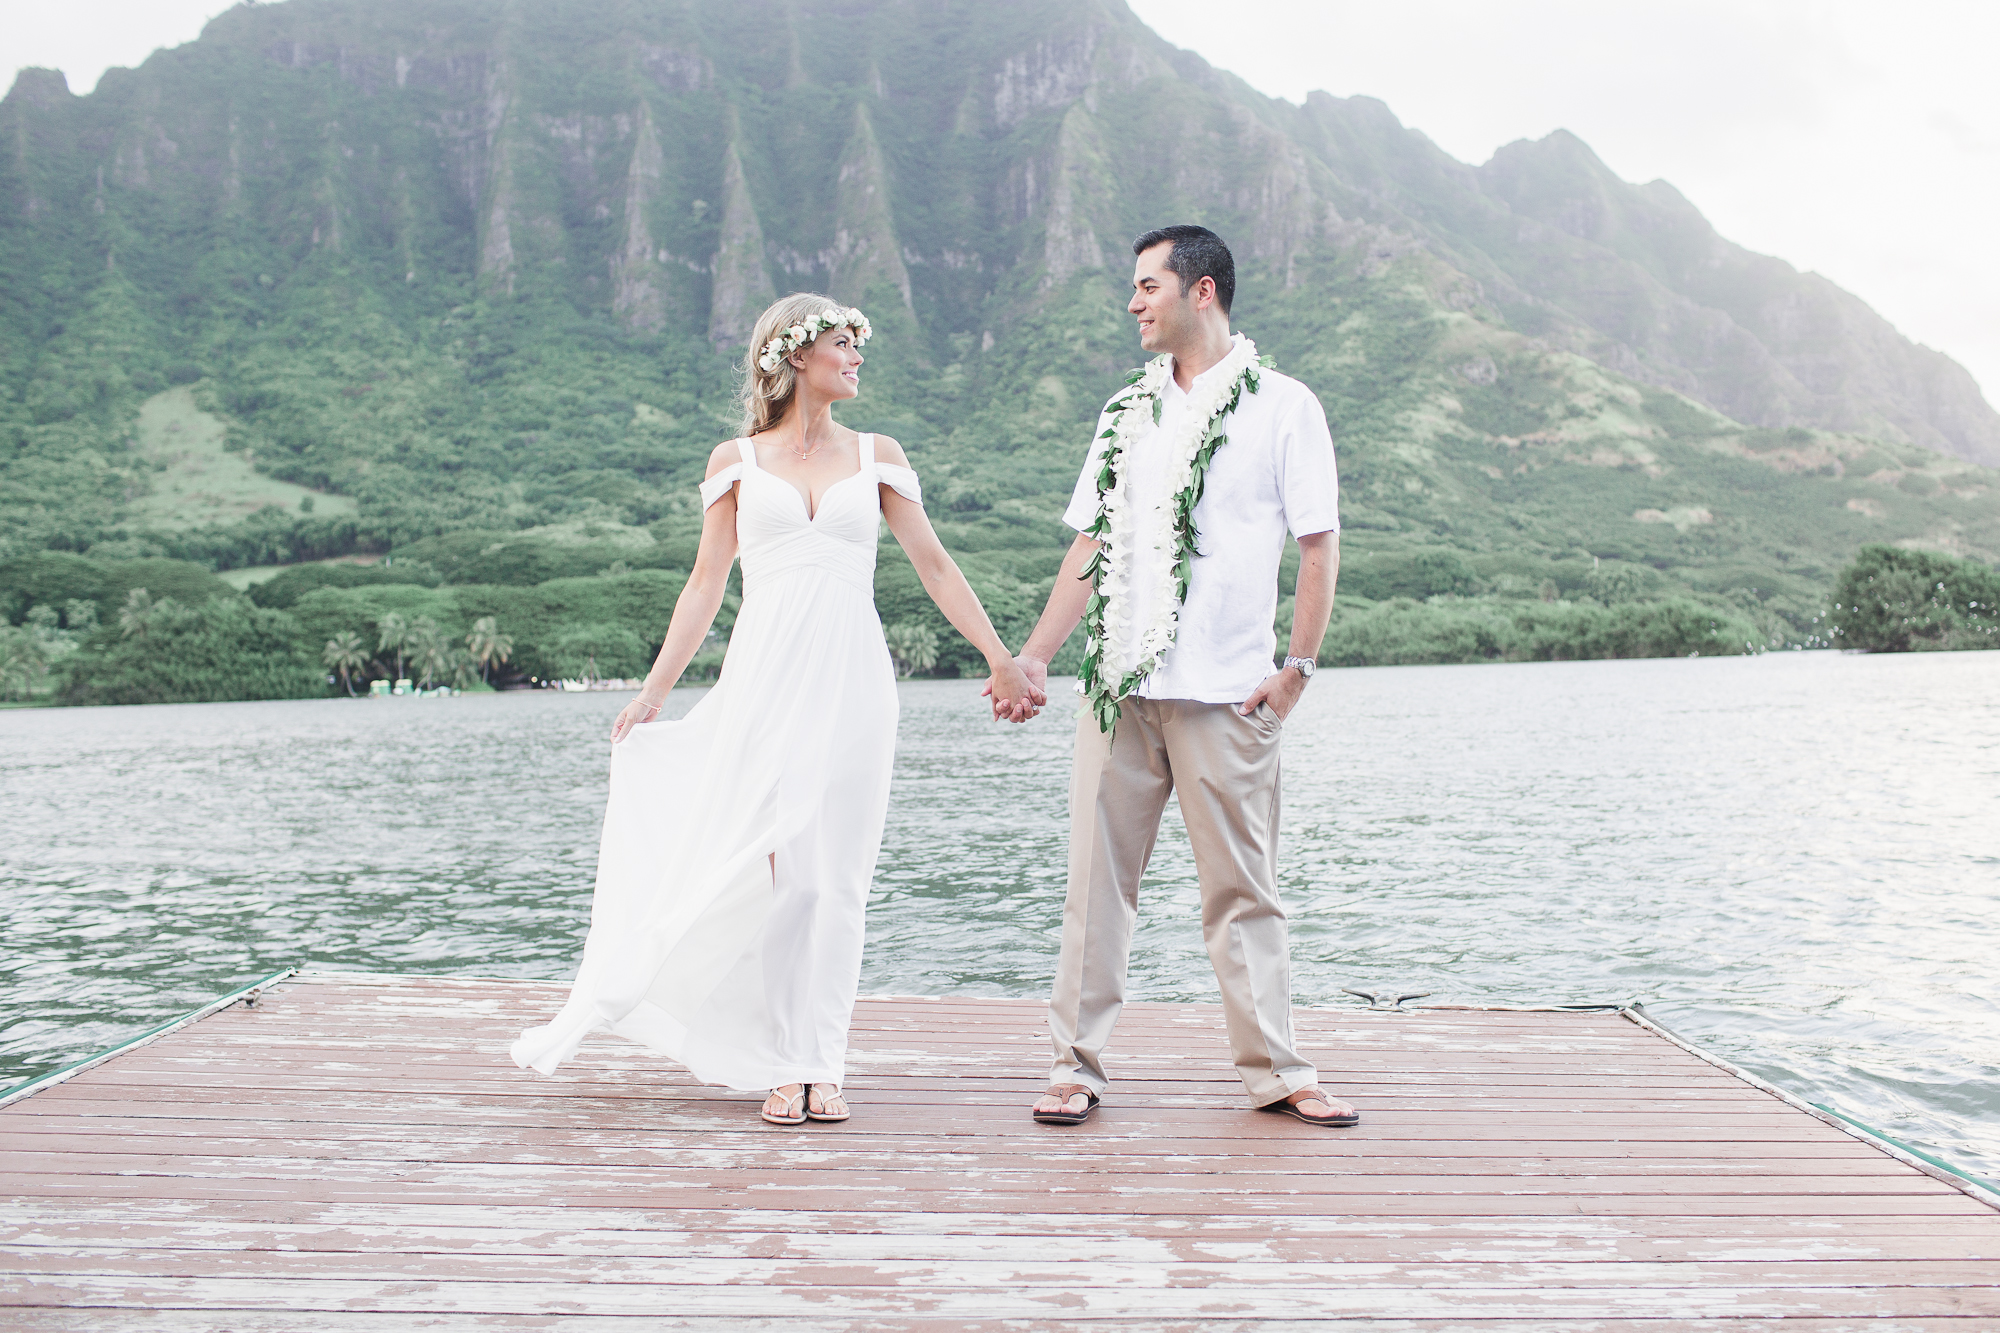 Another wedding that I hold very close and dear to my heart is Lucy + Charlie's wedding. Their wedding was held at Kuloa Ranch's Secret Moli'i Island and everything about it (and them) was perfect.